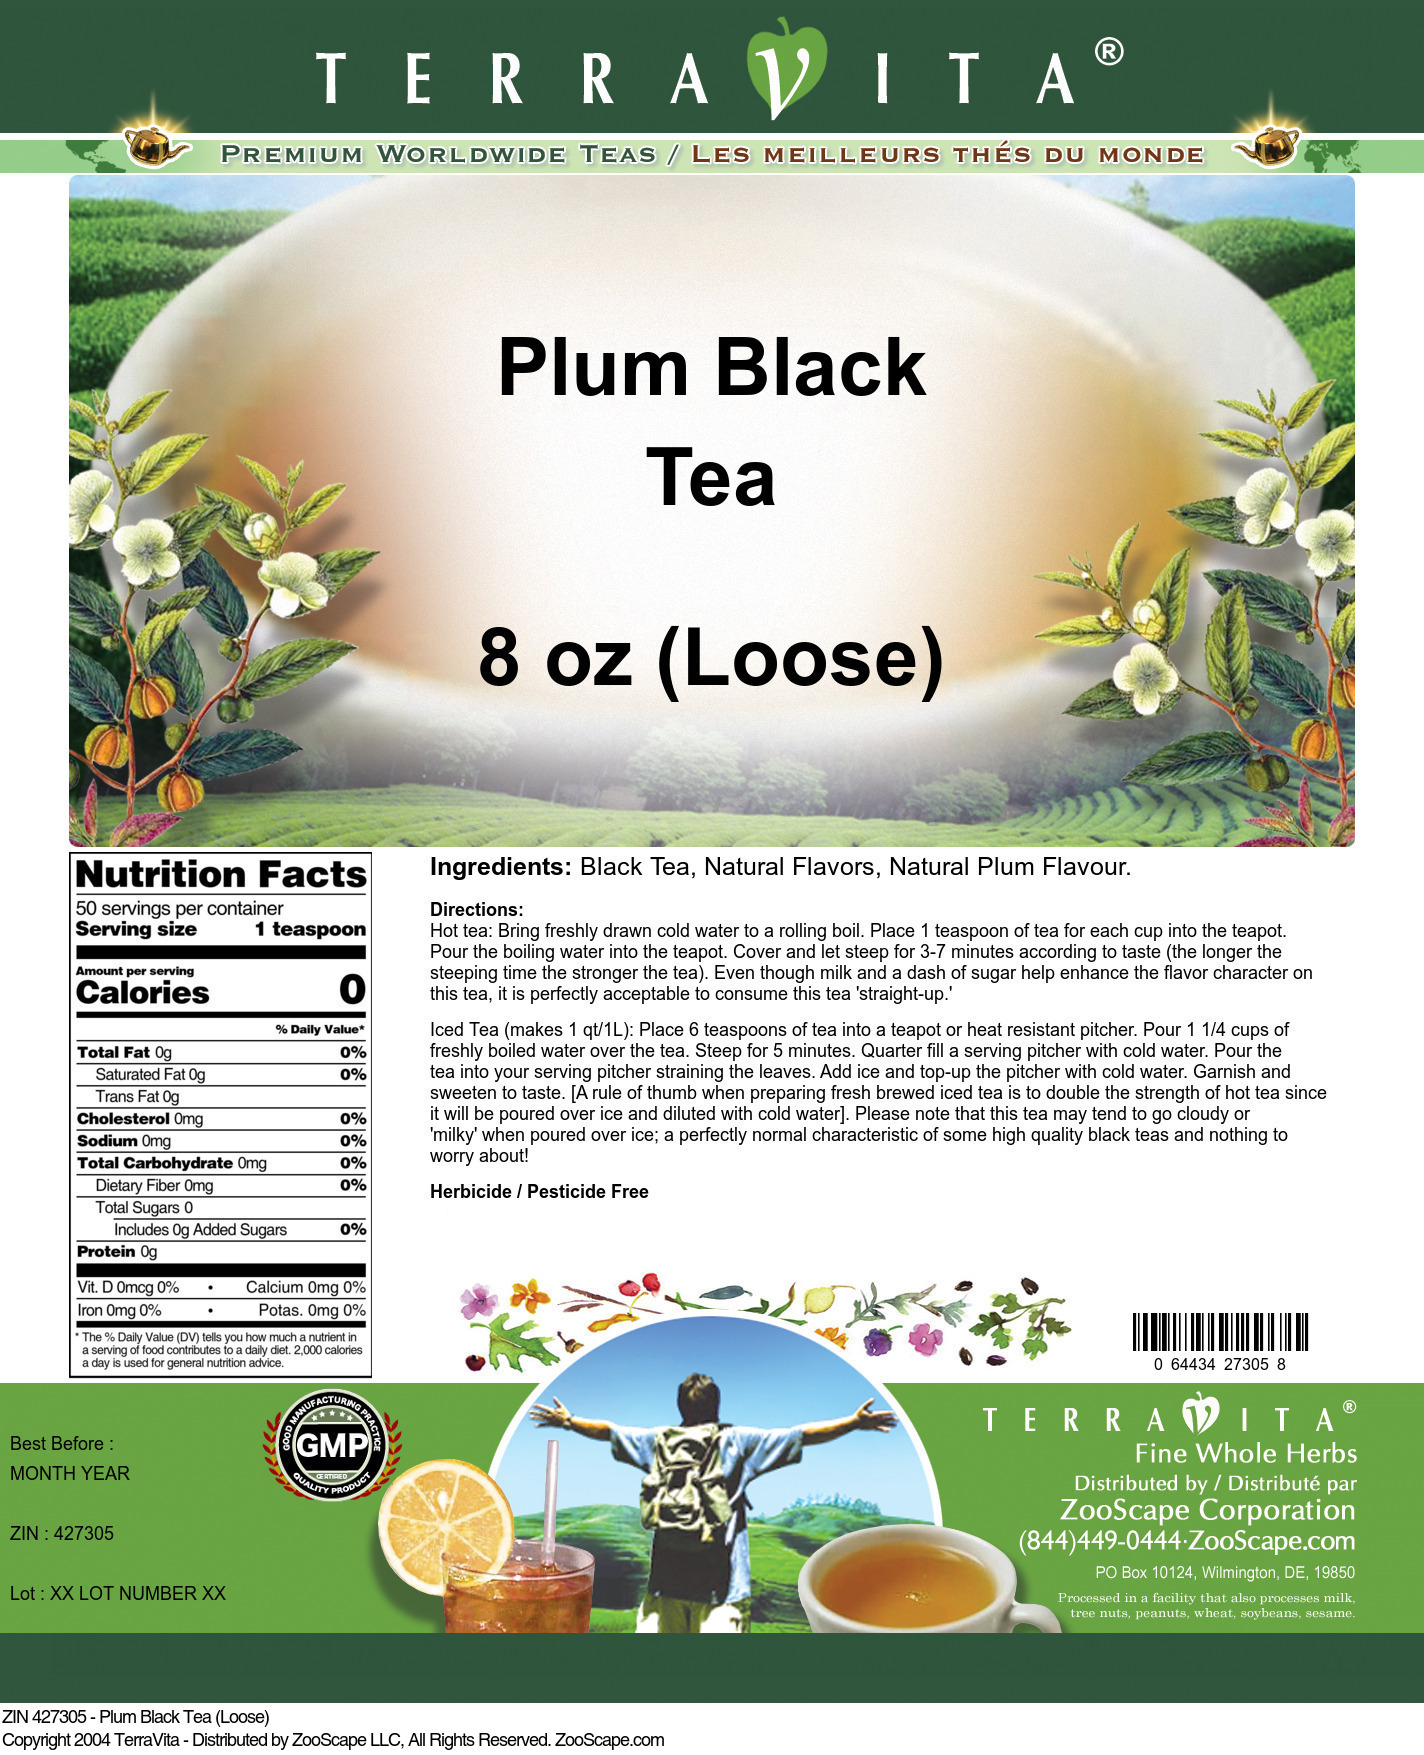 Plum Black Tea (Loose) - Label